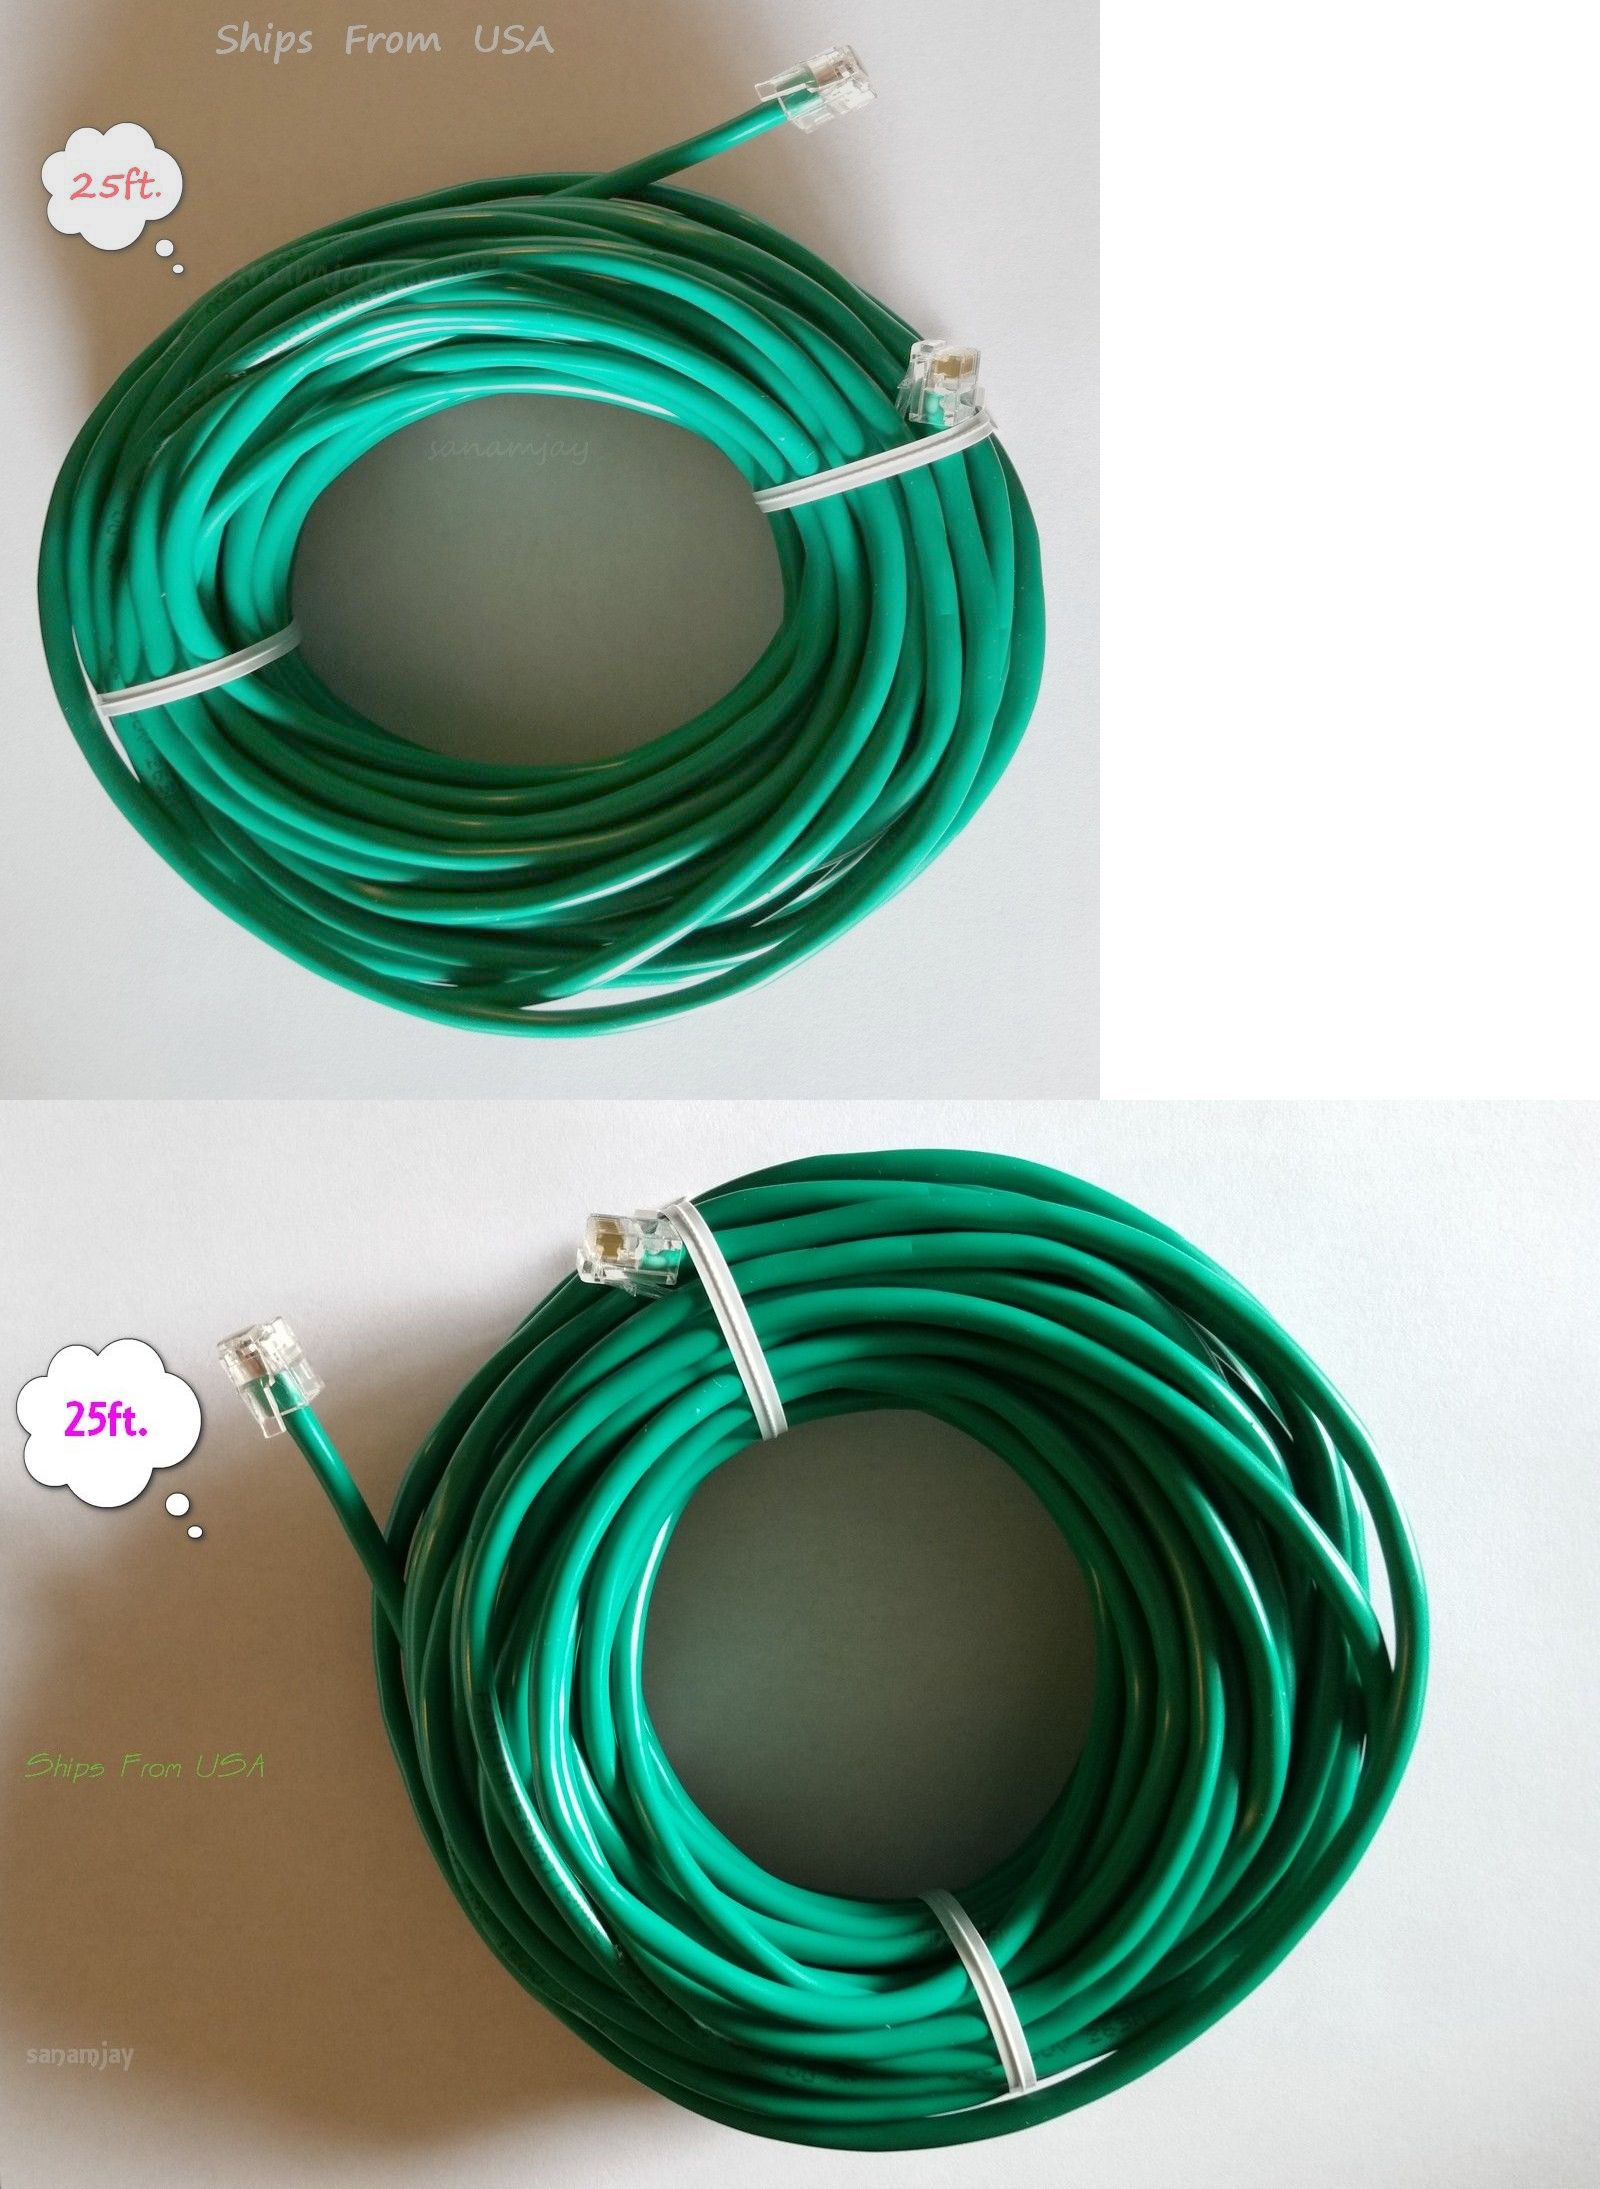 hight resolution of dsl phone cables rj 11 67857 25ft rj11 rj12 cat5e green dsl telephone data cable for centurylink atandt etc buy it now only 11 99 on ebay phone